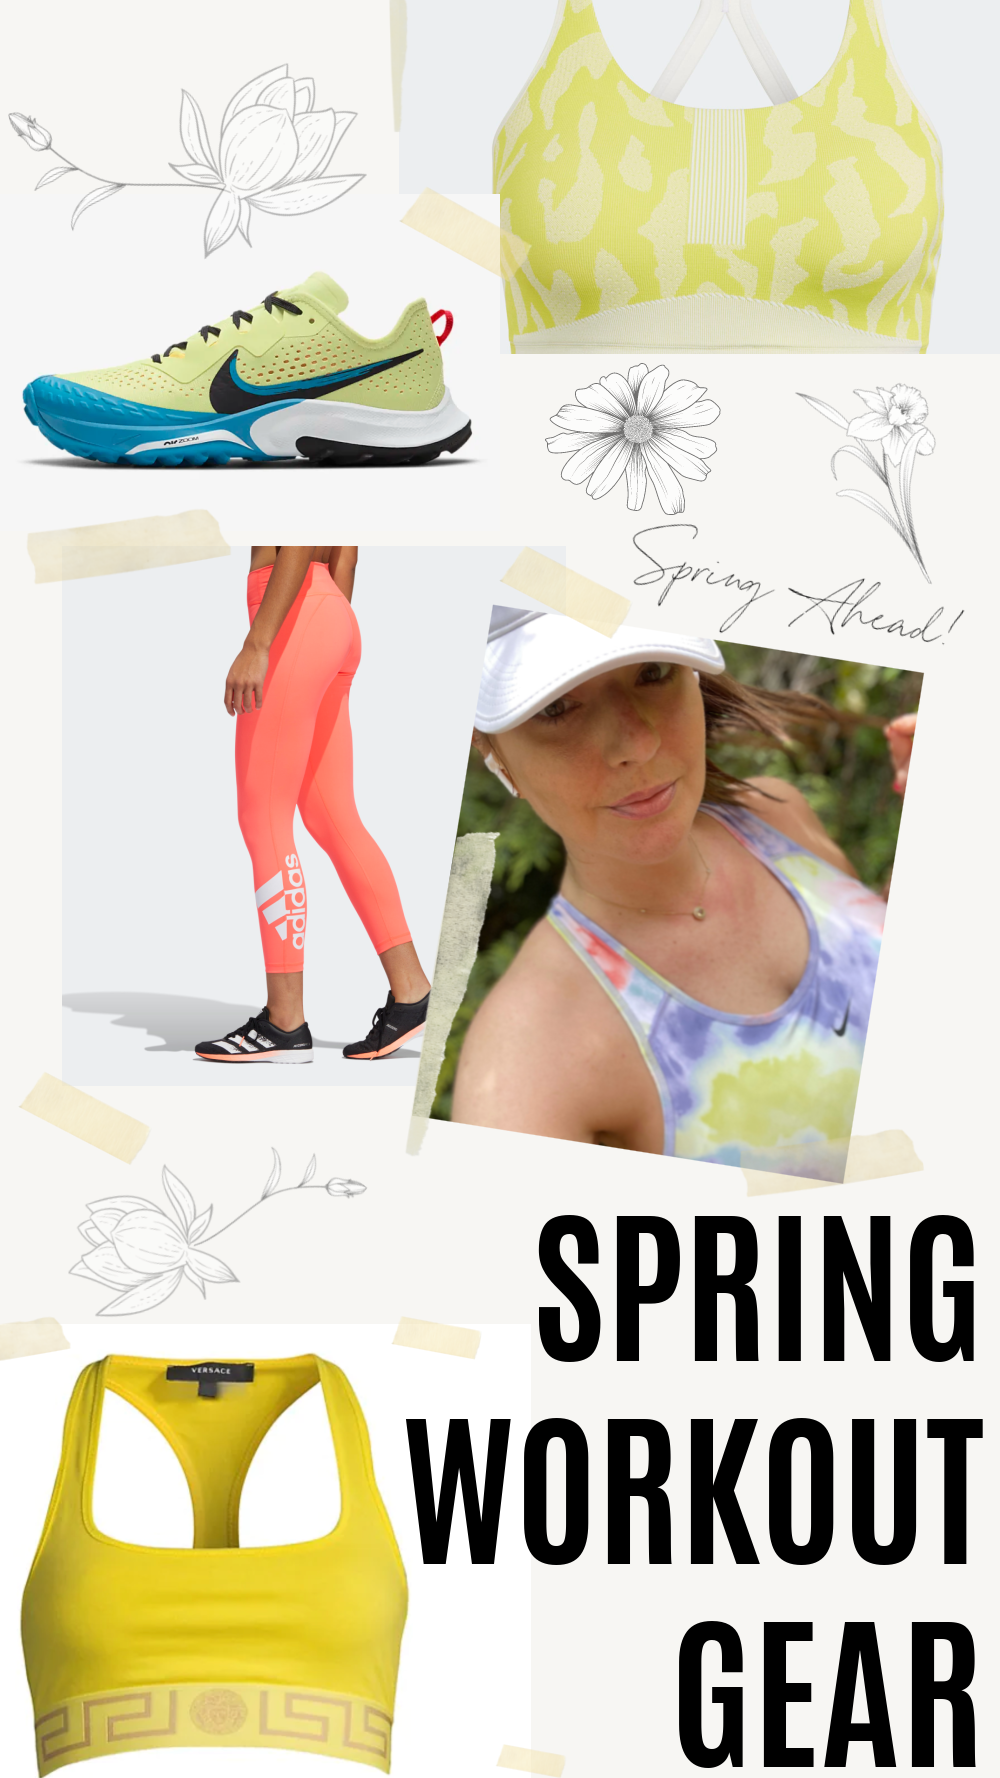 Spring Workout Clothes 2021 I Nike, Stella McCartney for Adidas, Versace and more #fashionstyle #stylish #workout #ootdstyle